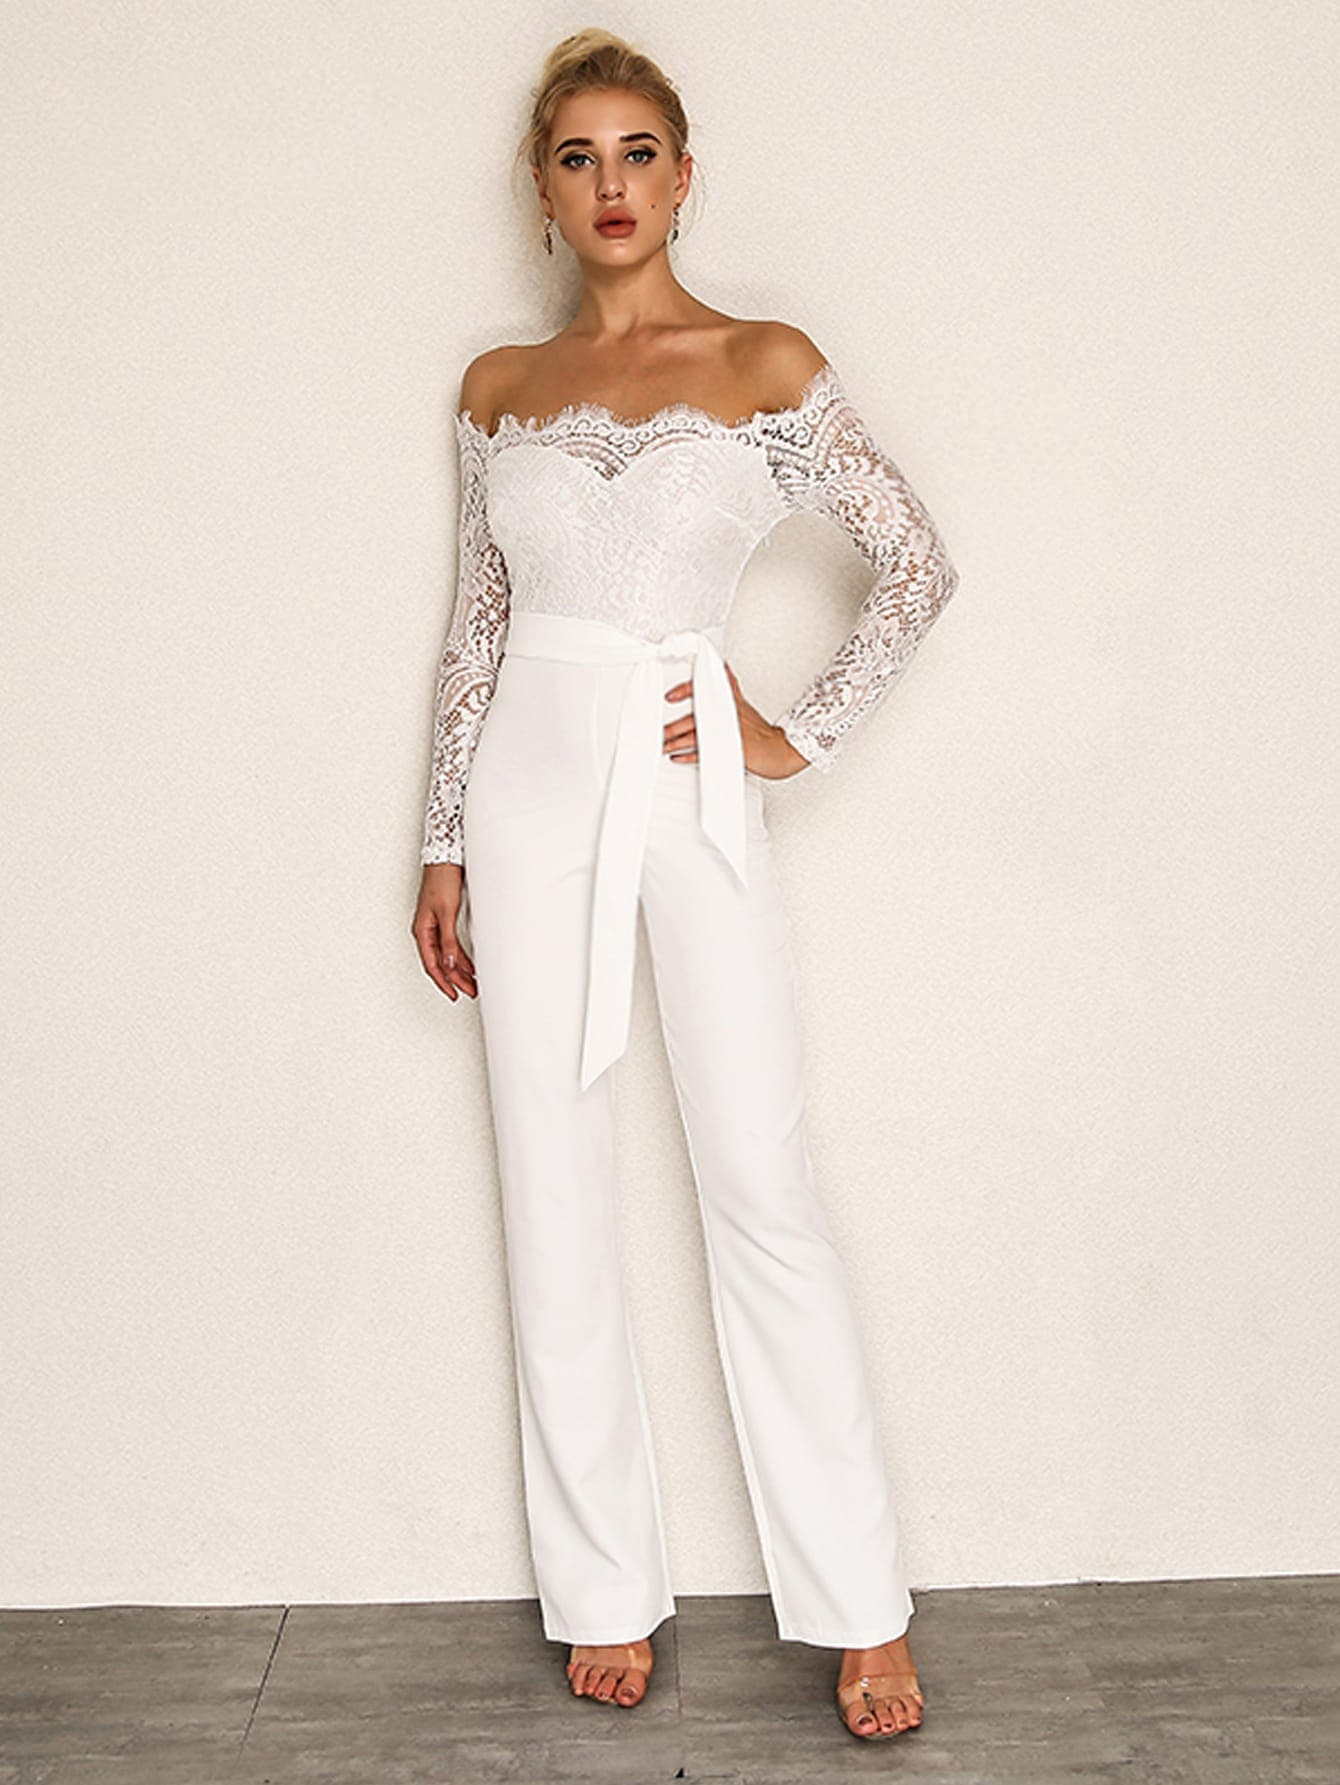 Hochzeit Jumpsuit Joyfunear Eyelash Lace Overlay Self Belted Jumpsuit Shein